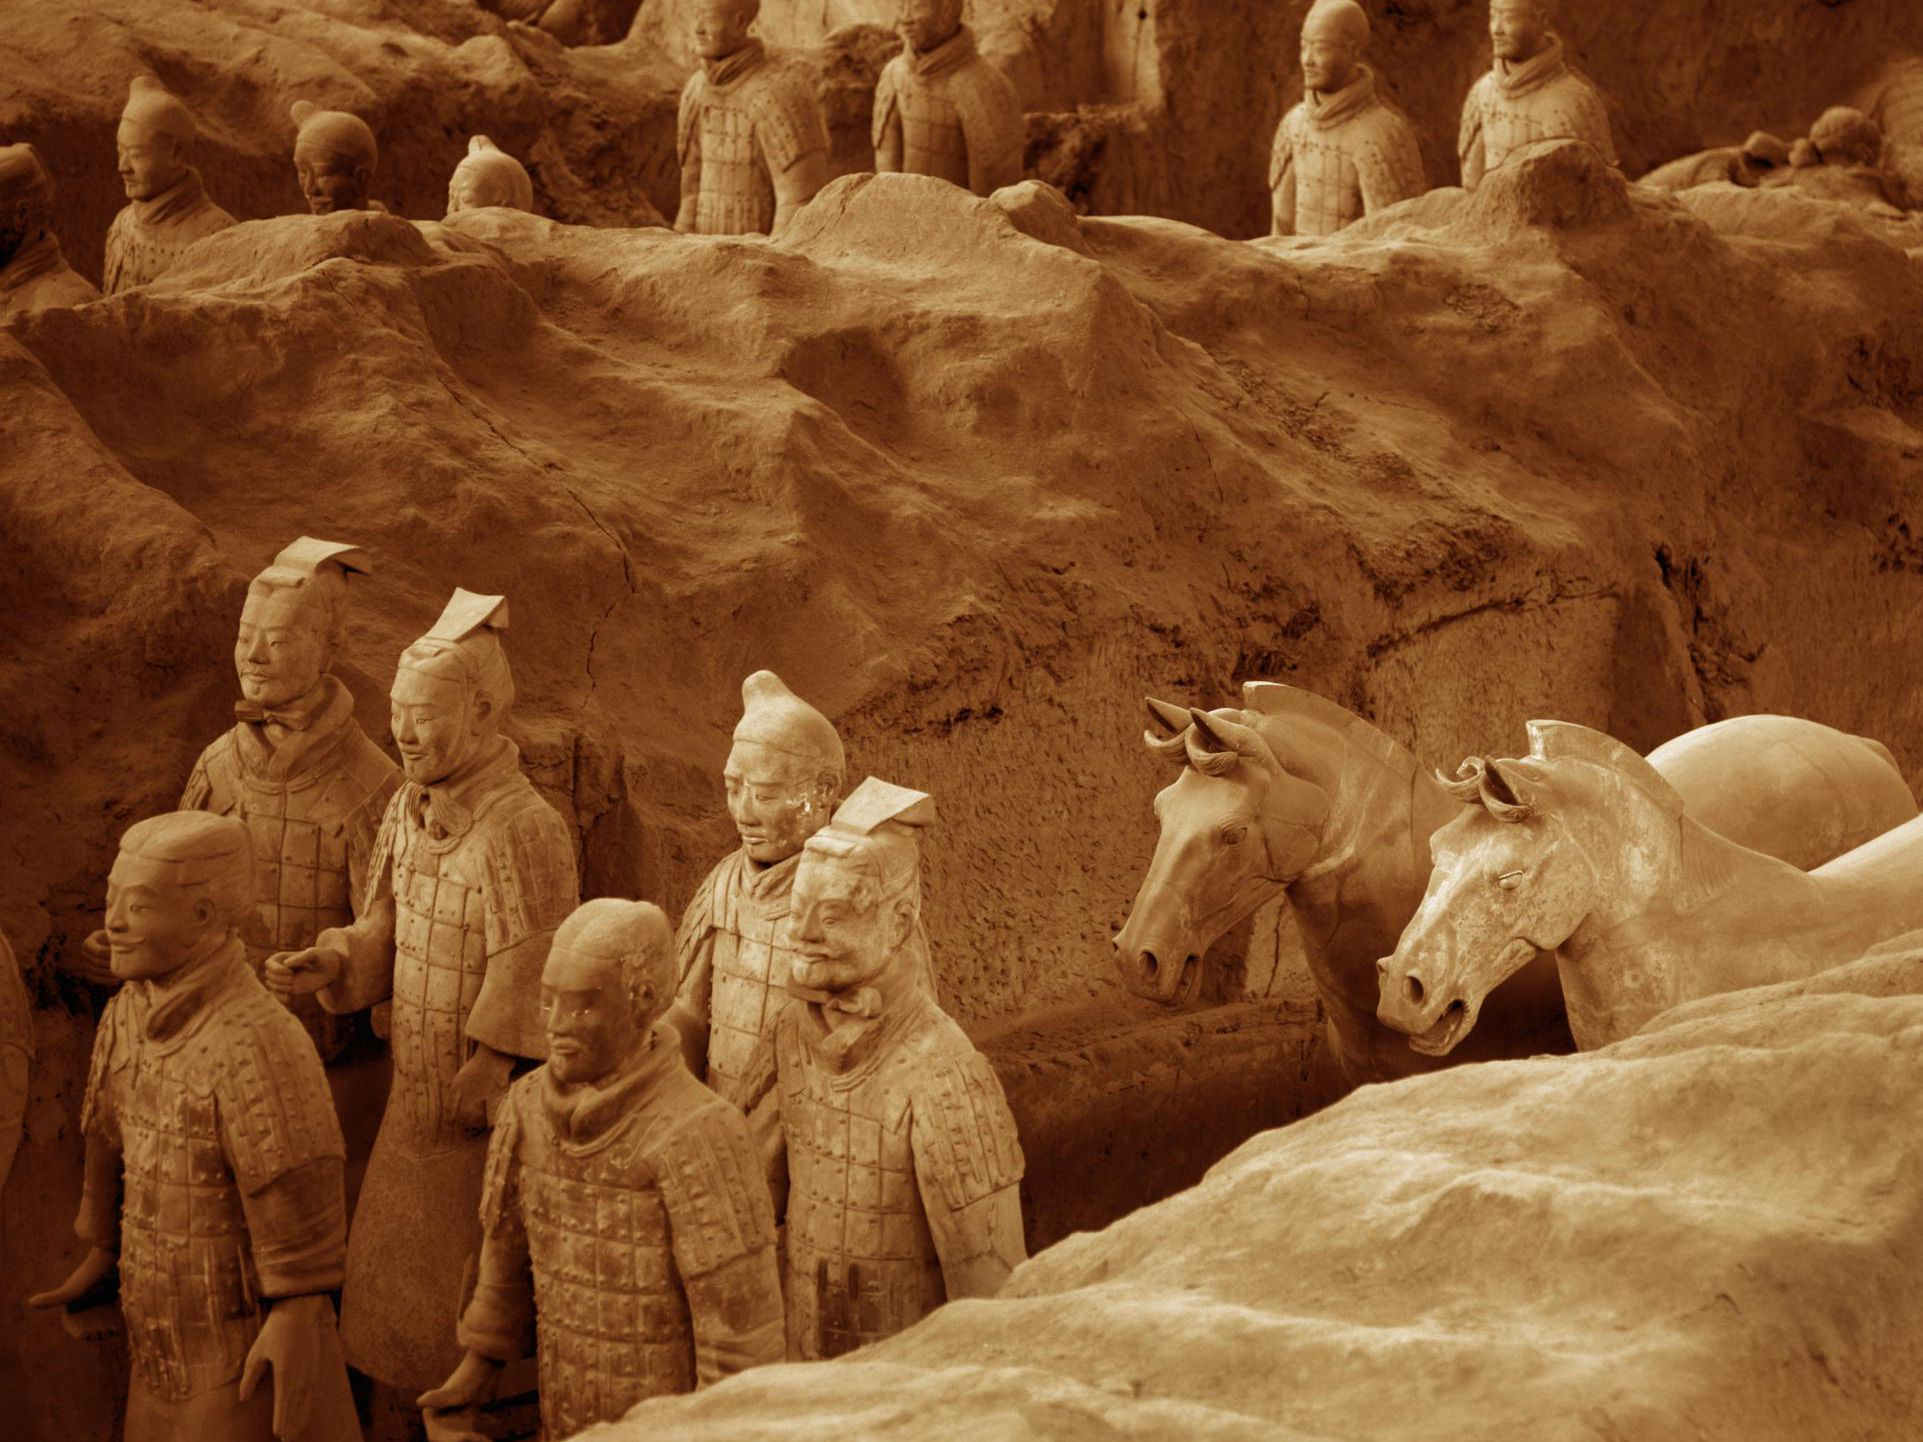 When Was the Terracotta Army Found?